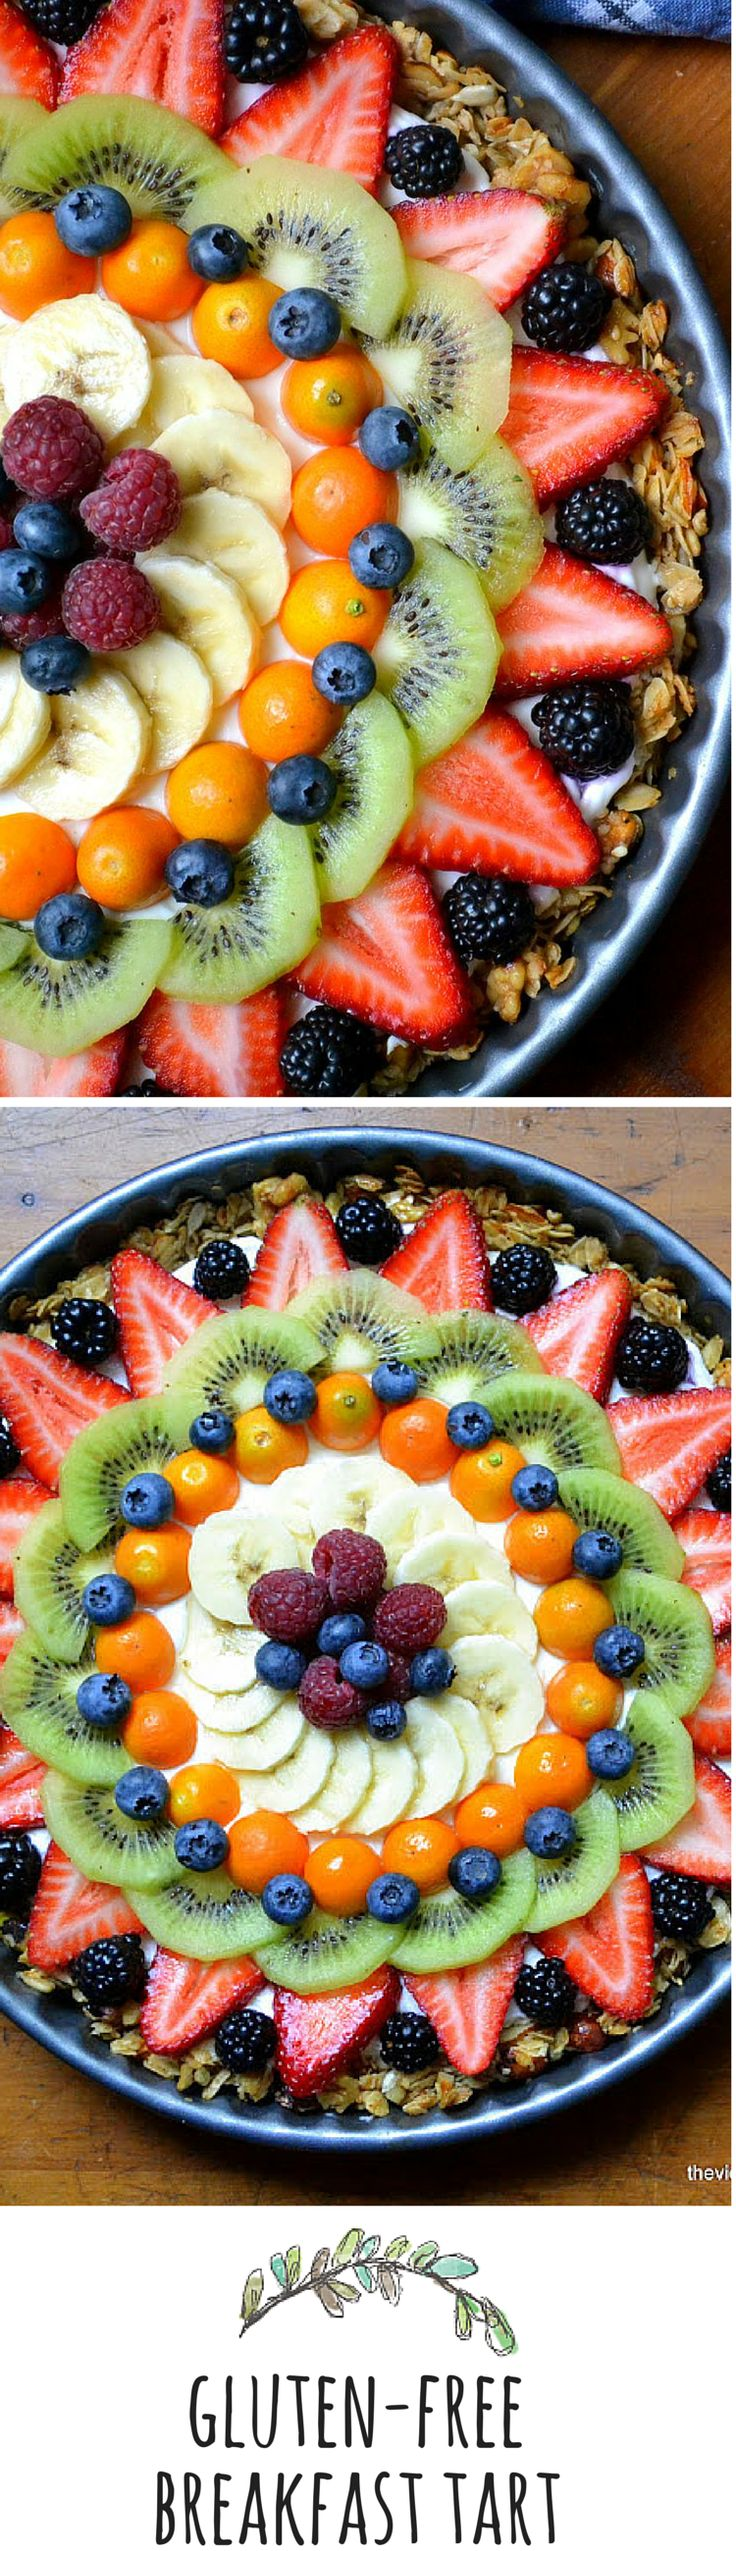 A little glam for the breakfast hour...healthy and gluten free, this fruit and yogurt tart is a winner!